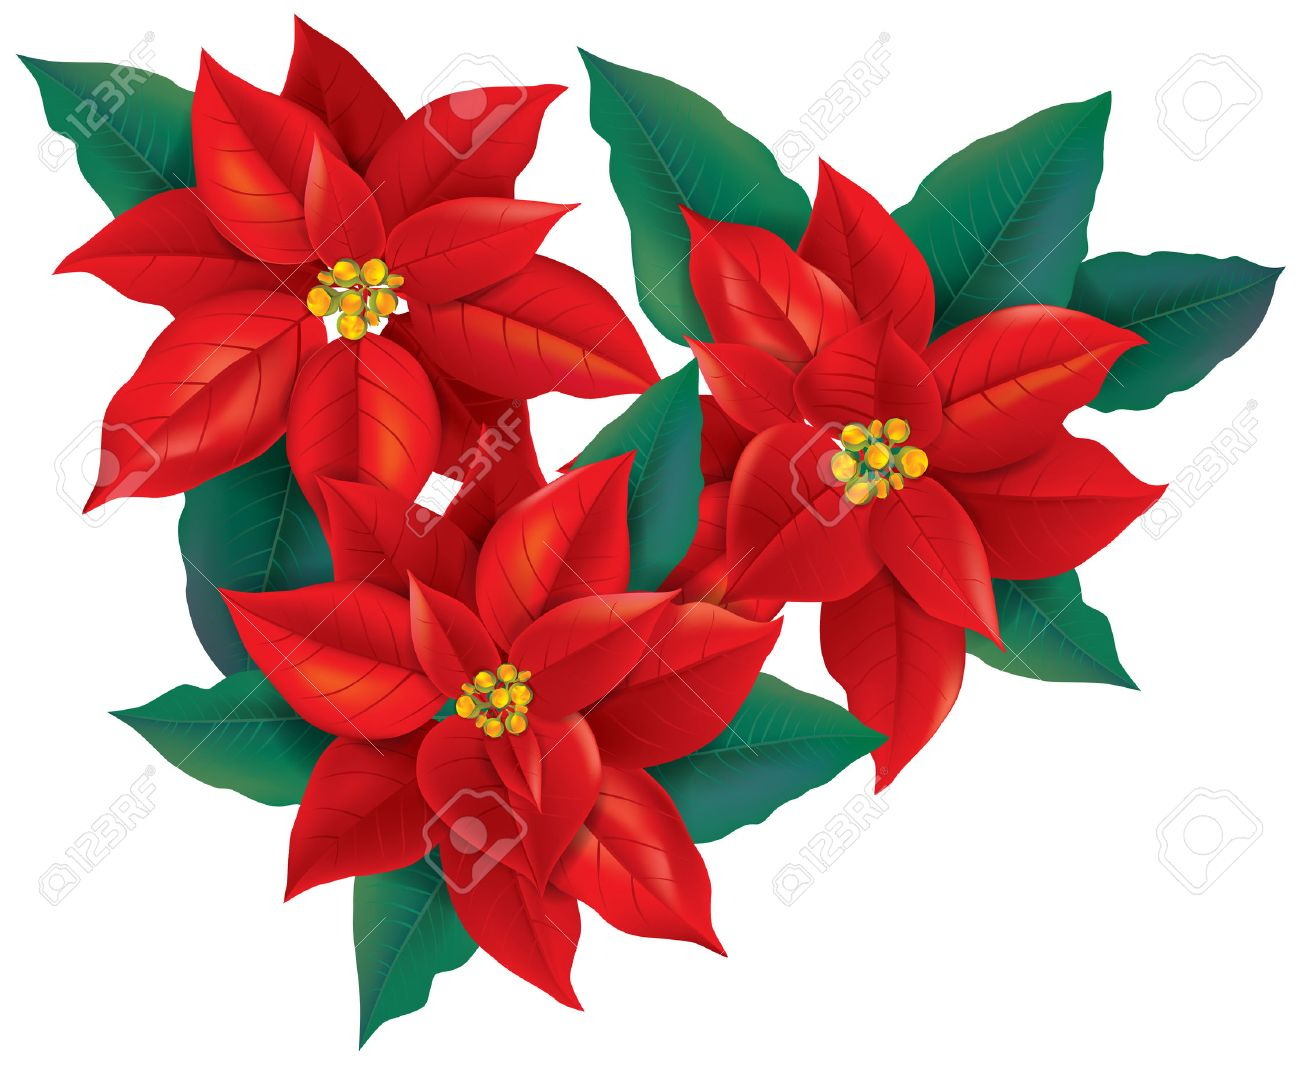 Red Poinsettia christmas flower. Contains transparent objects.